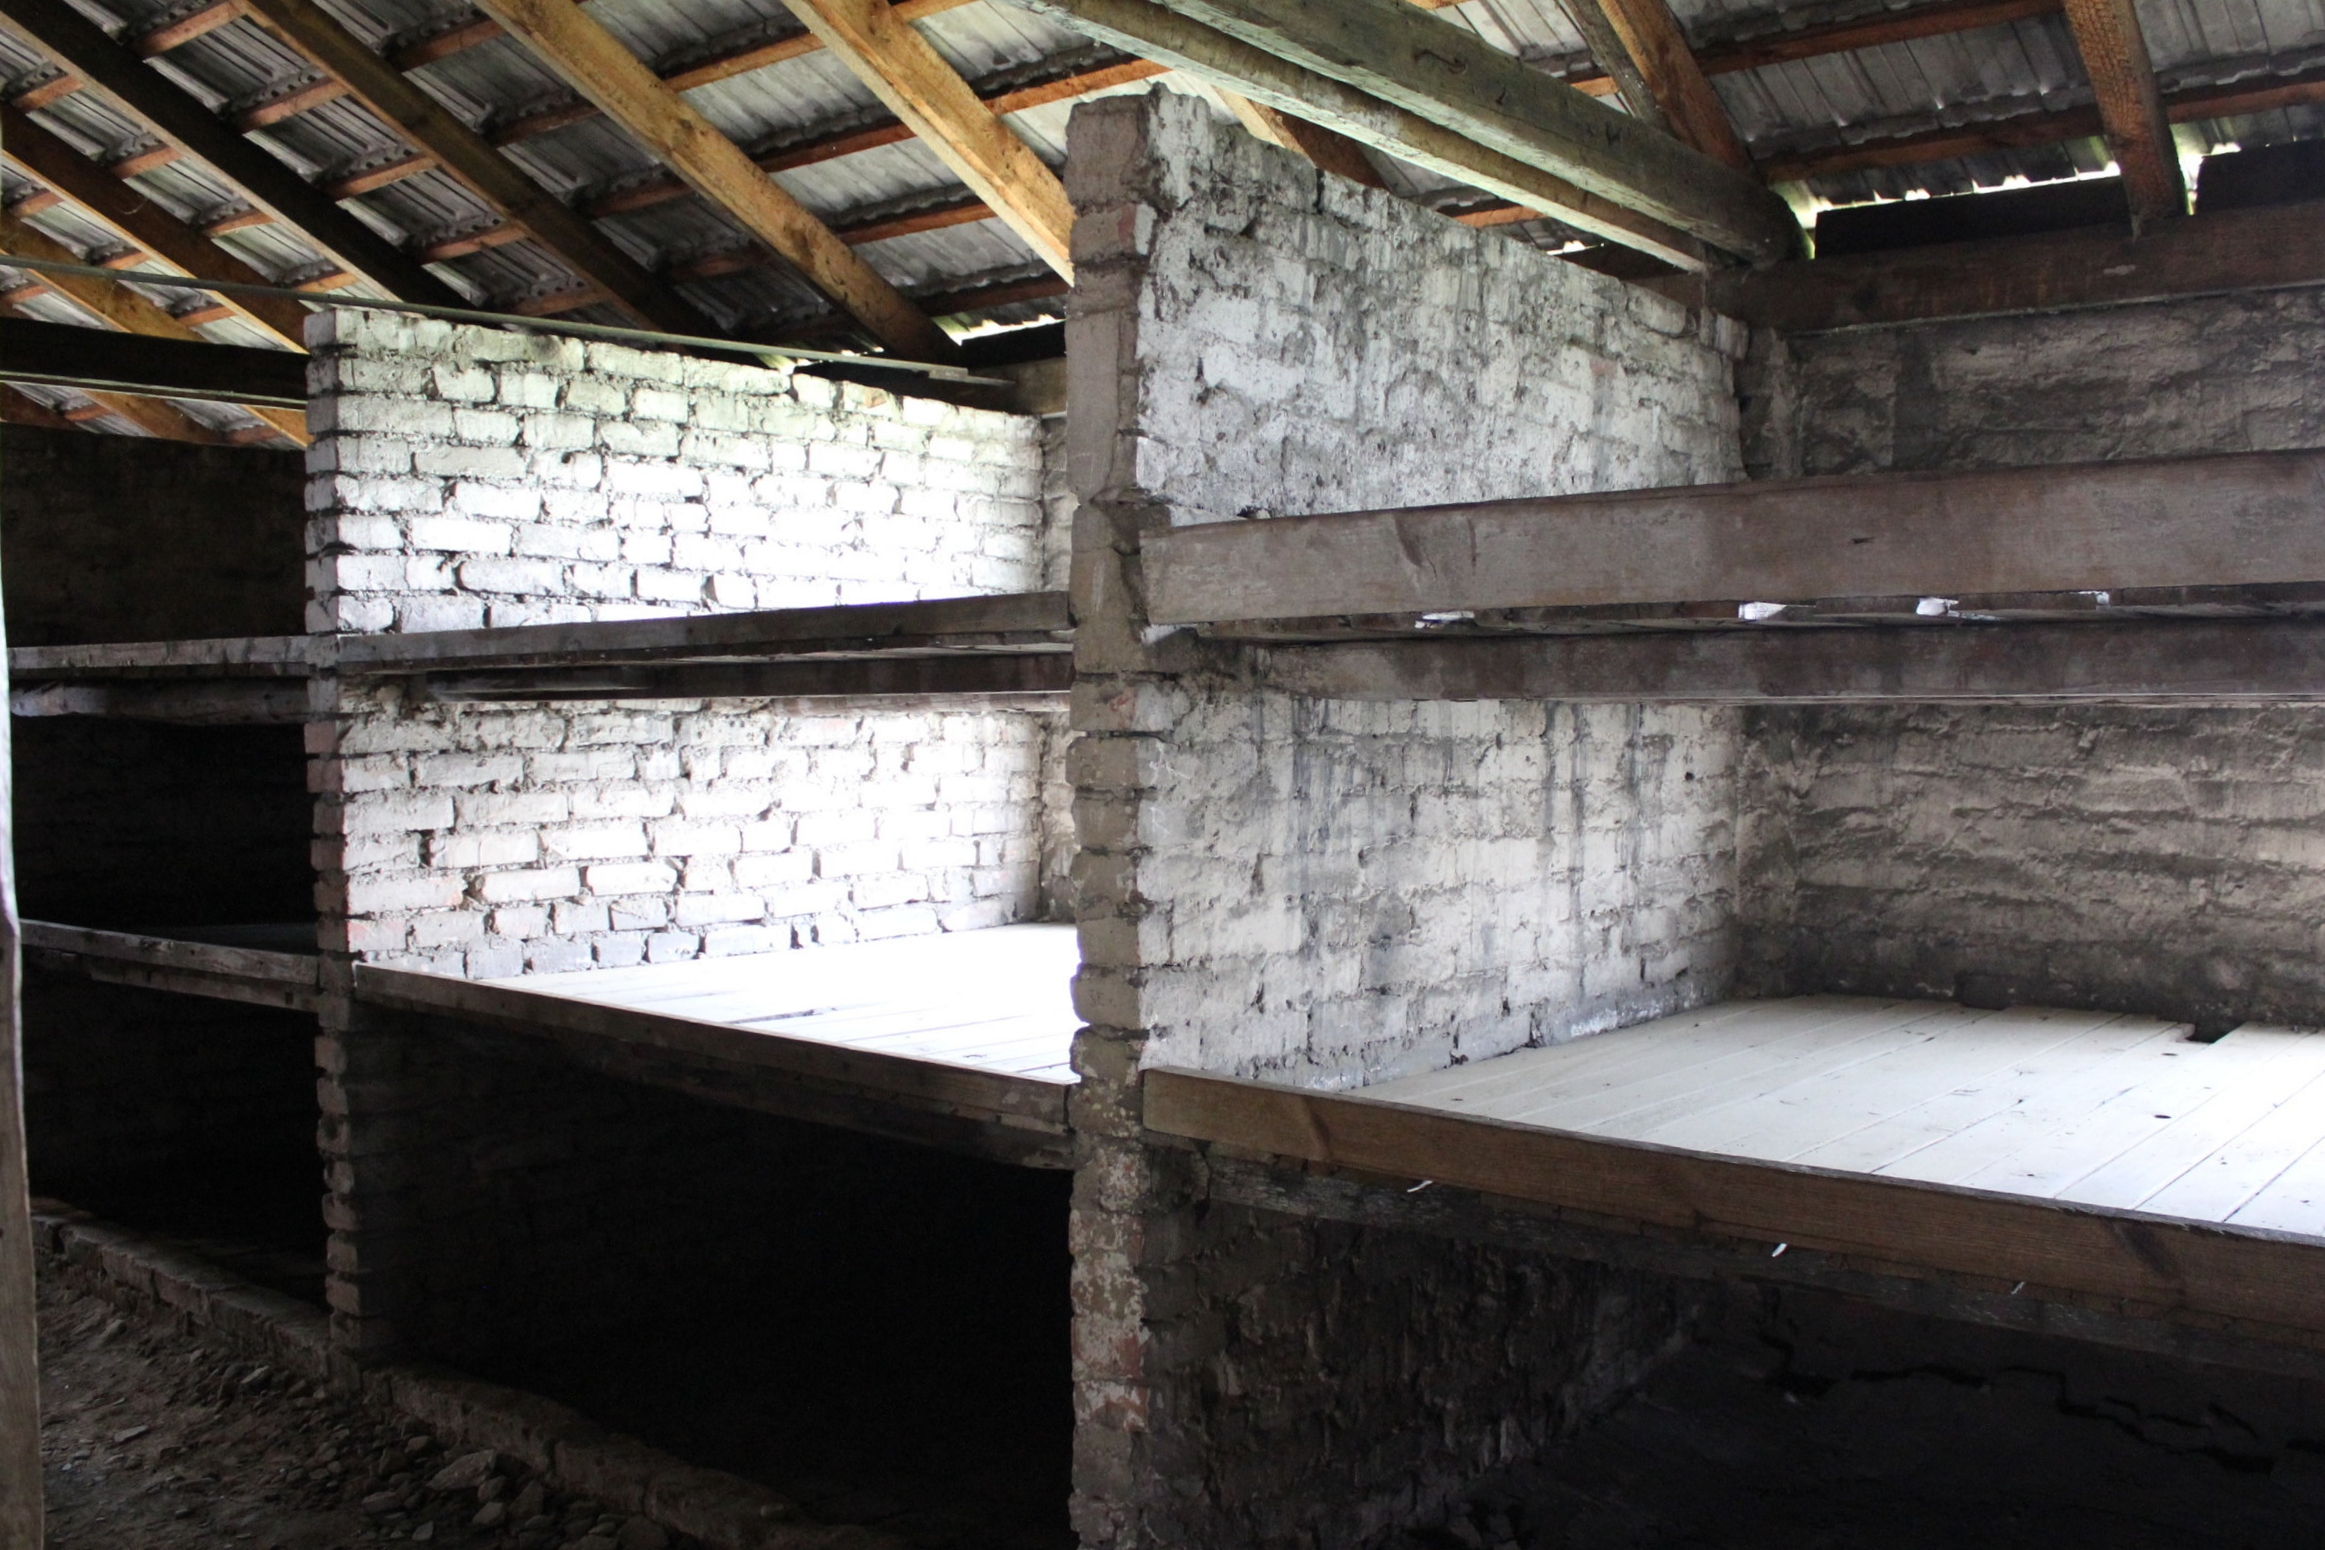 Women had to sleep on these bunks (the lower bunk was no more than cold hard ground) while awaiting their deaths, since the gas chambers were at full capacity due to the masses of arriving Jews. Countless women died here before they could be summoned.